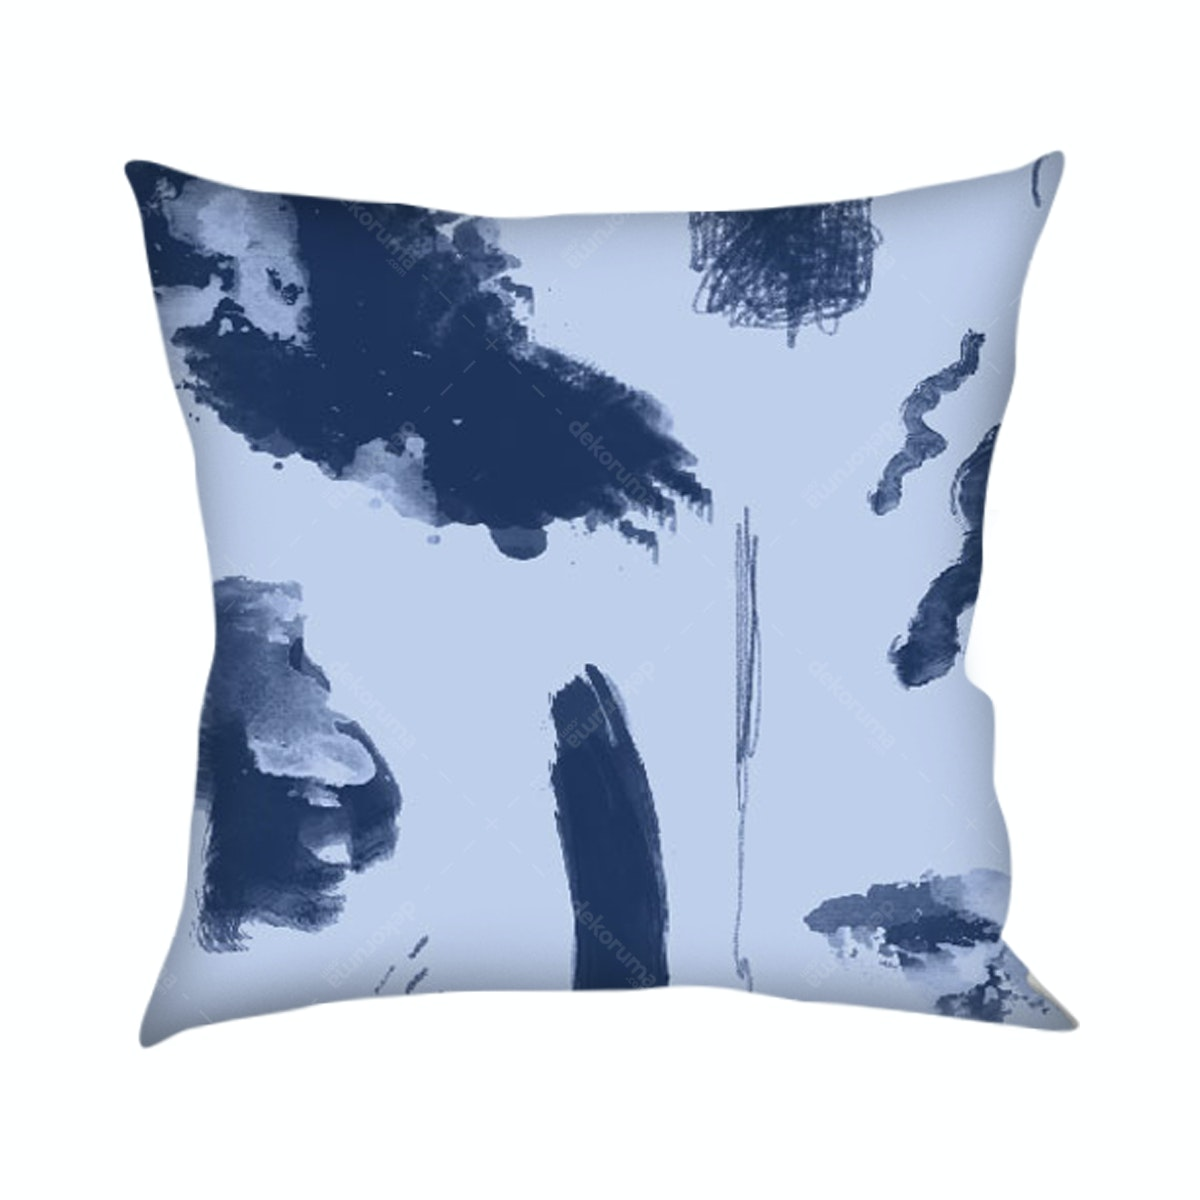 On&On Abstract Blue Cushion 40x40cm (Insert+Cover)